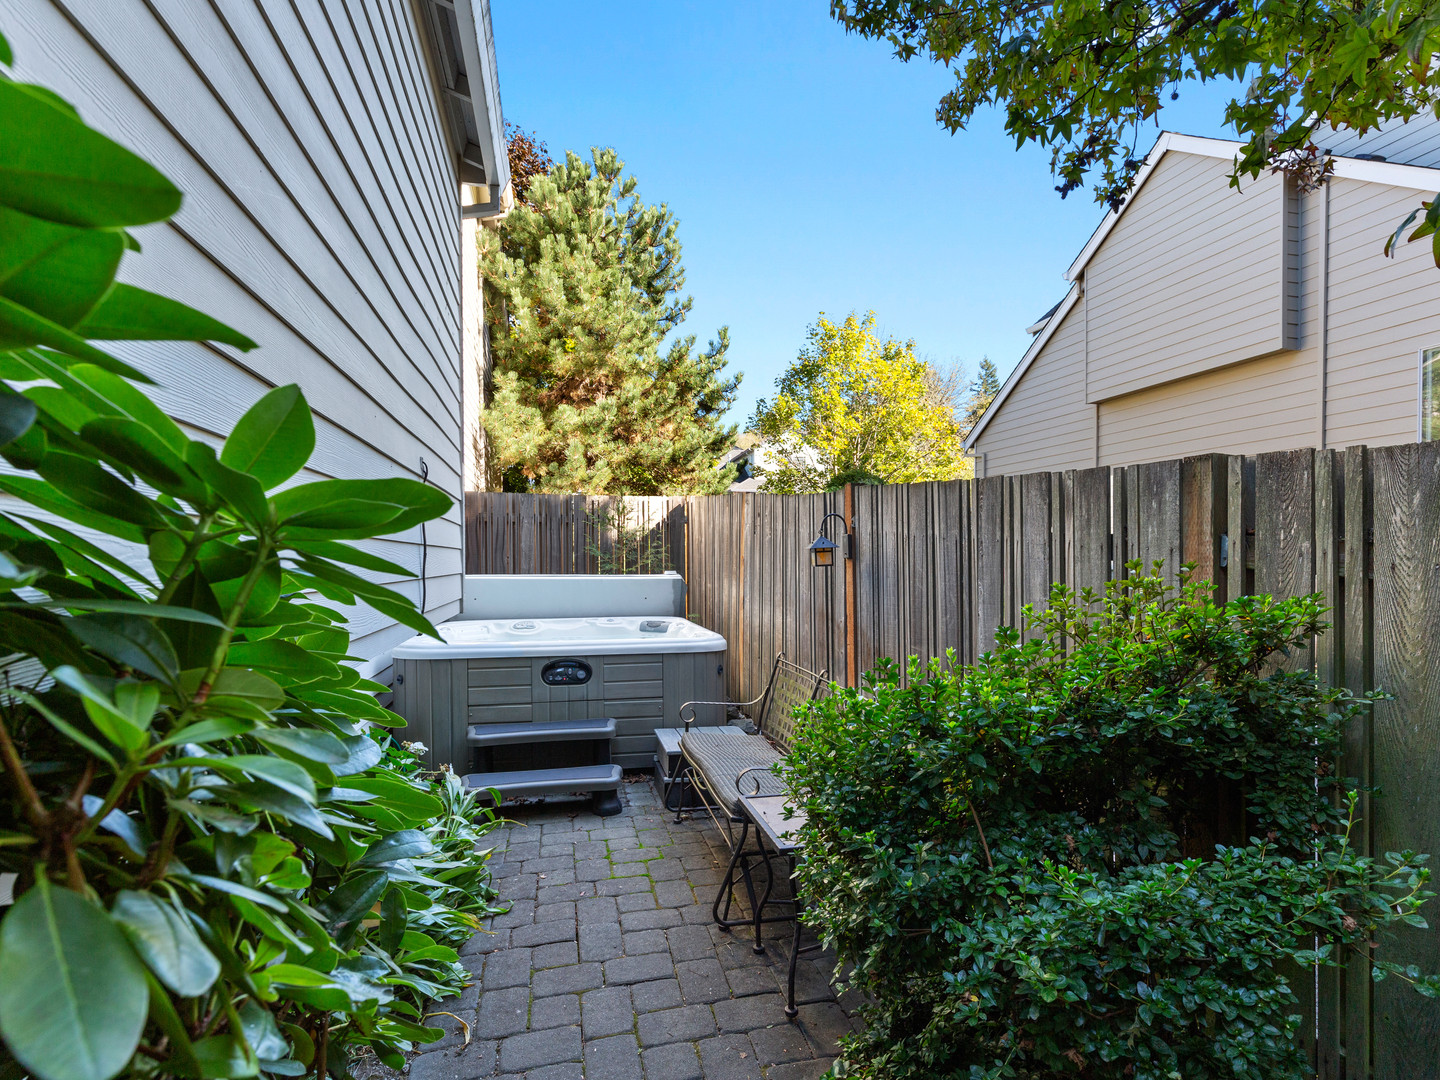 3459 NW 115th Ave (31 of 34).jpg